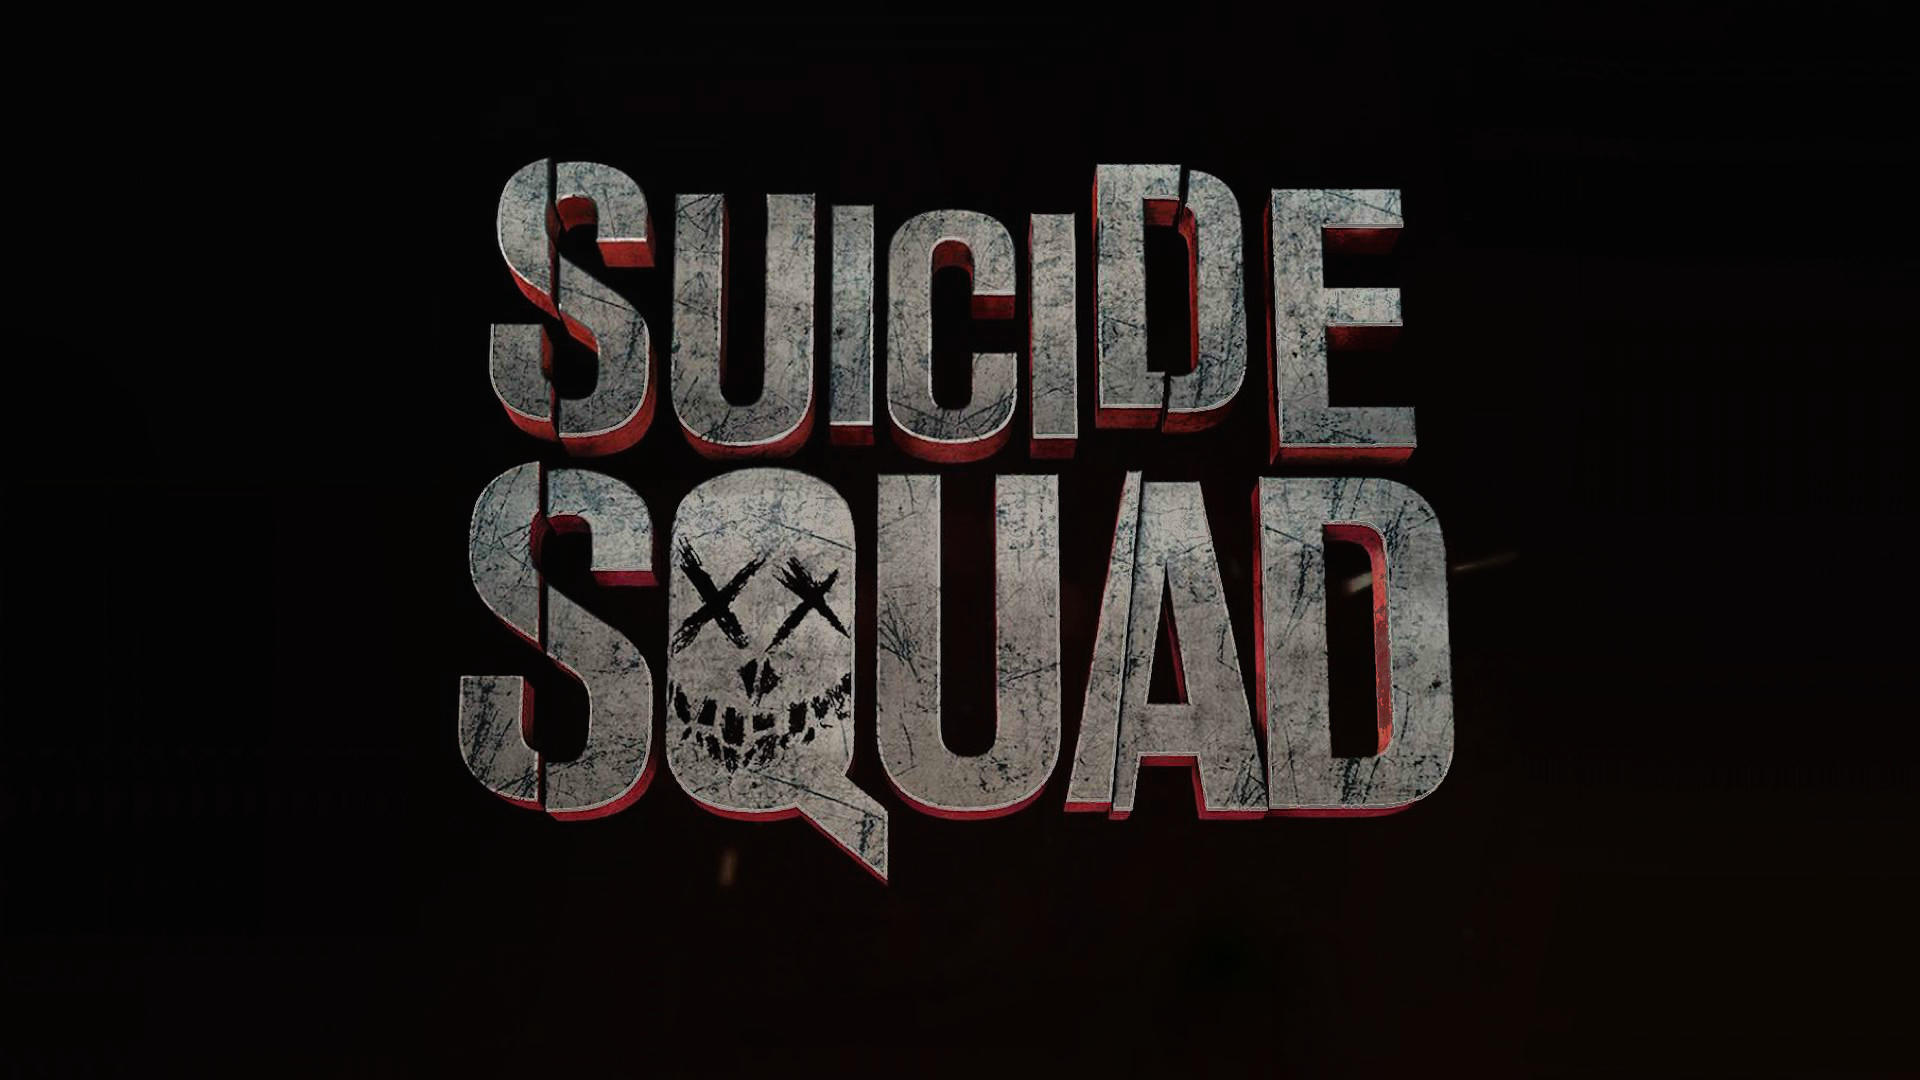 Suicide Squad 2016 HD wallpapers download 1920x1080